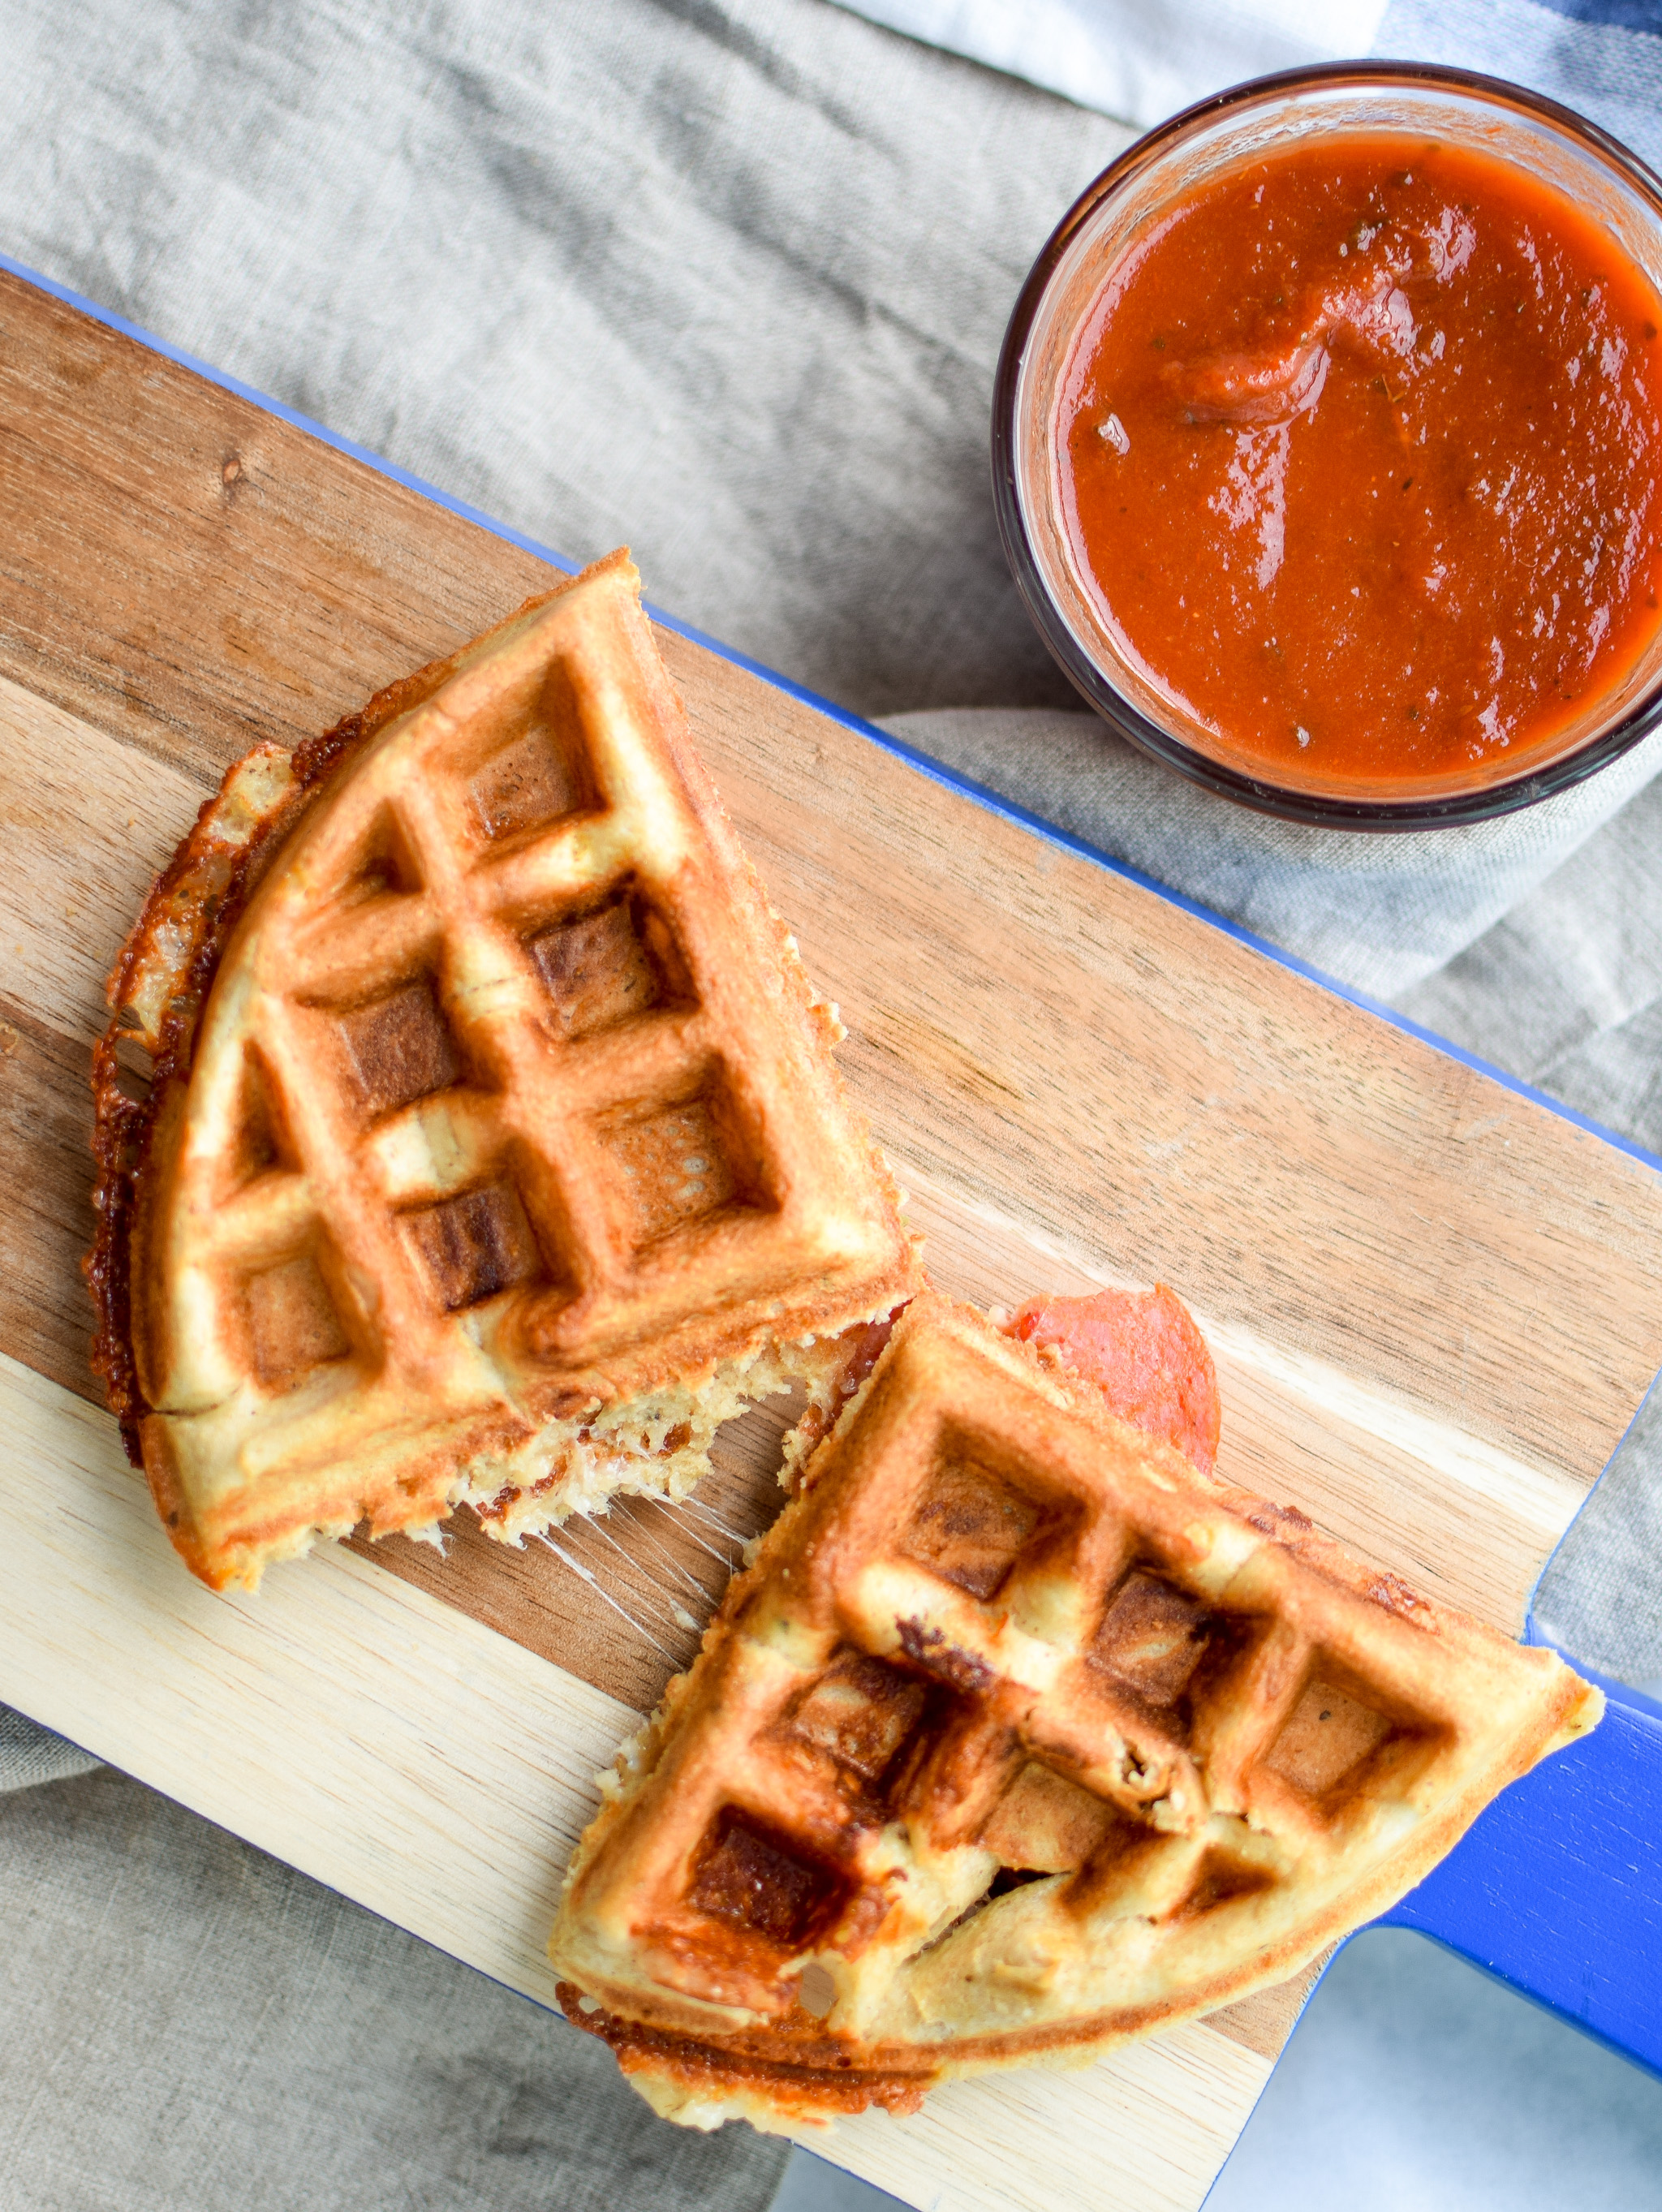 Pizza + Waffles made super easy at home! Stuffed with mozzarella and pepperoni, plus packed with protein!